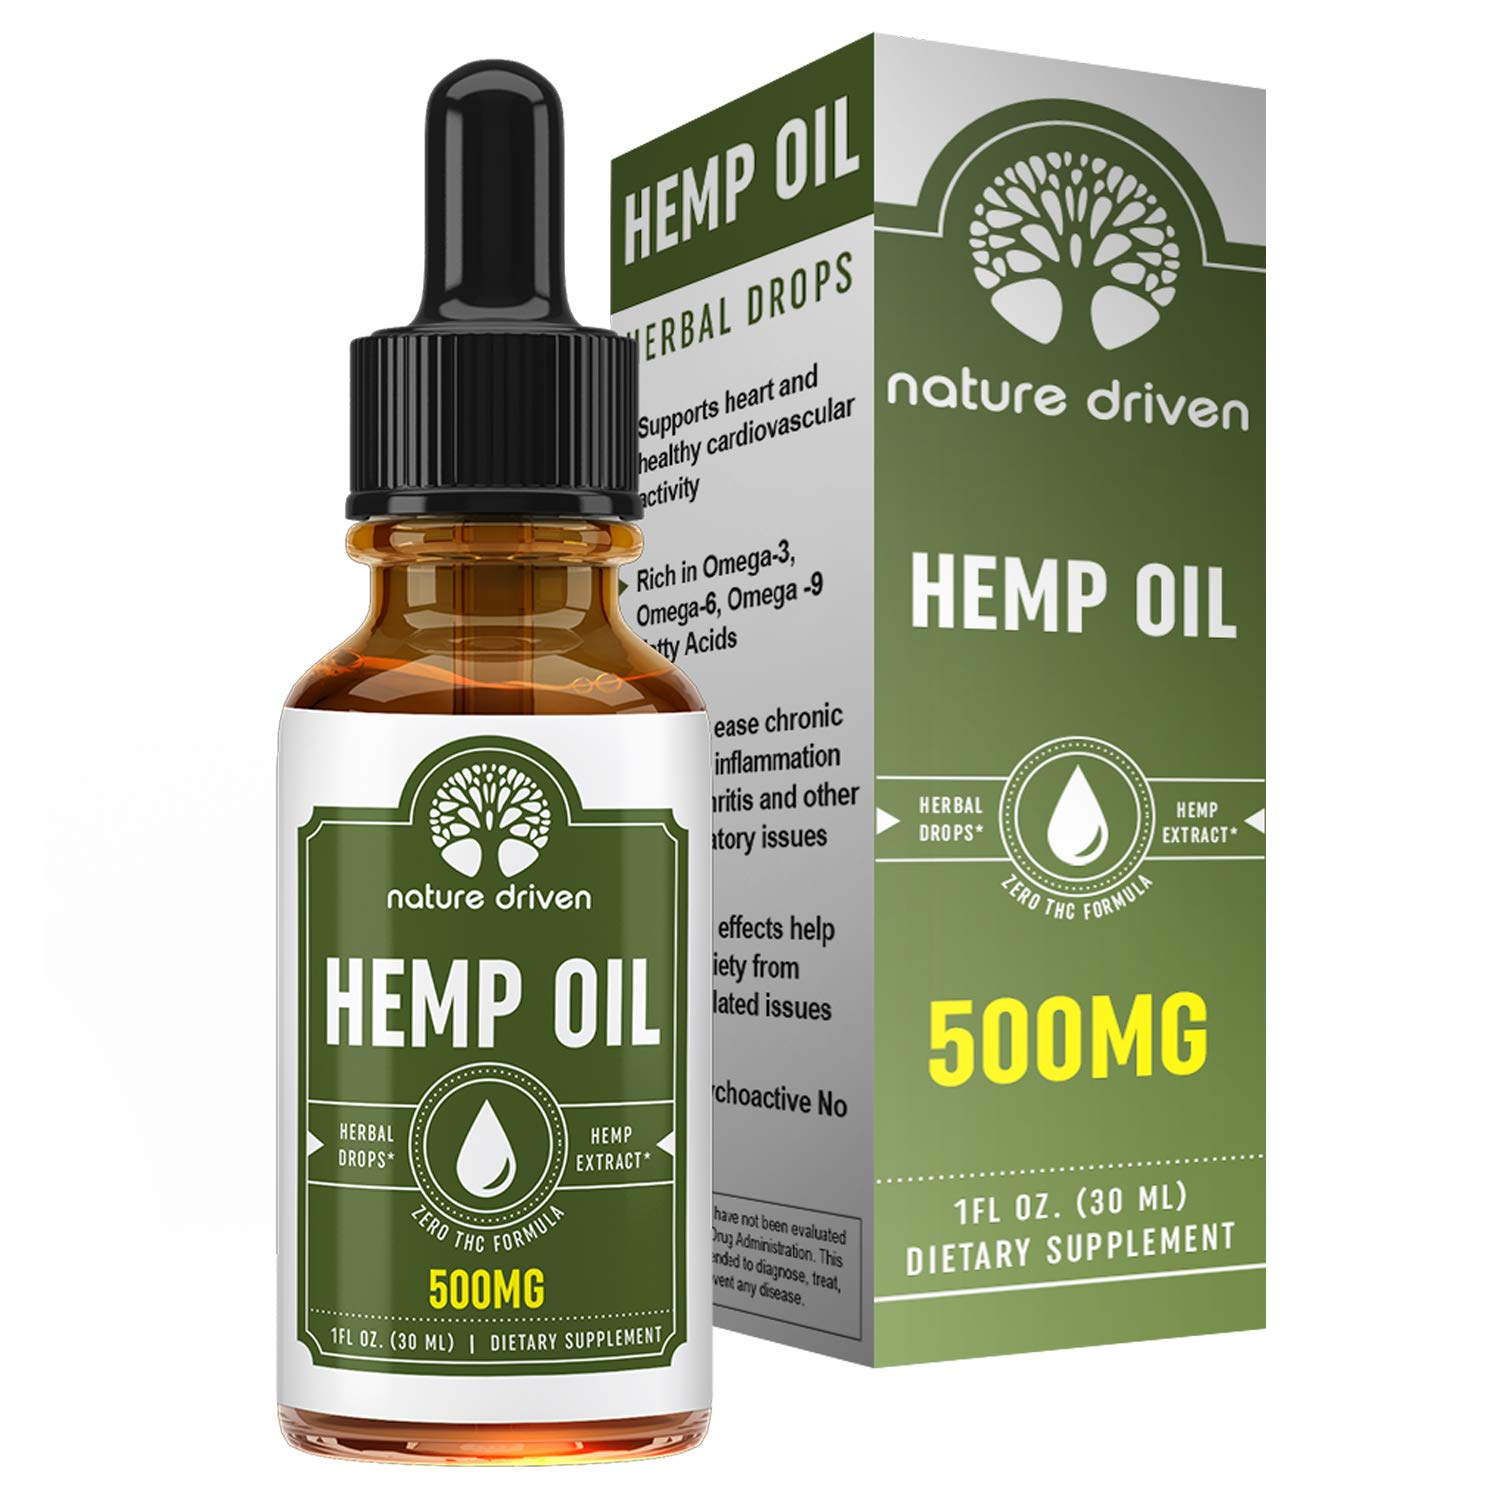 Premium Hemp Oil Drops (500MG) :: Packed with Vitamins and Omega 3 Fatty Acids:: Peppermint Flavored:: Natural Ingredients :: One Month Supply :: Nature Driven